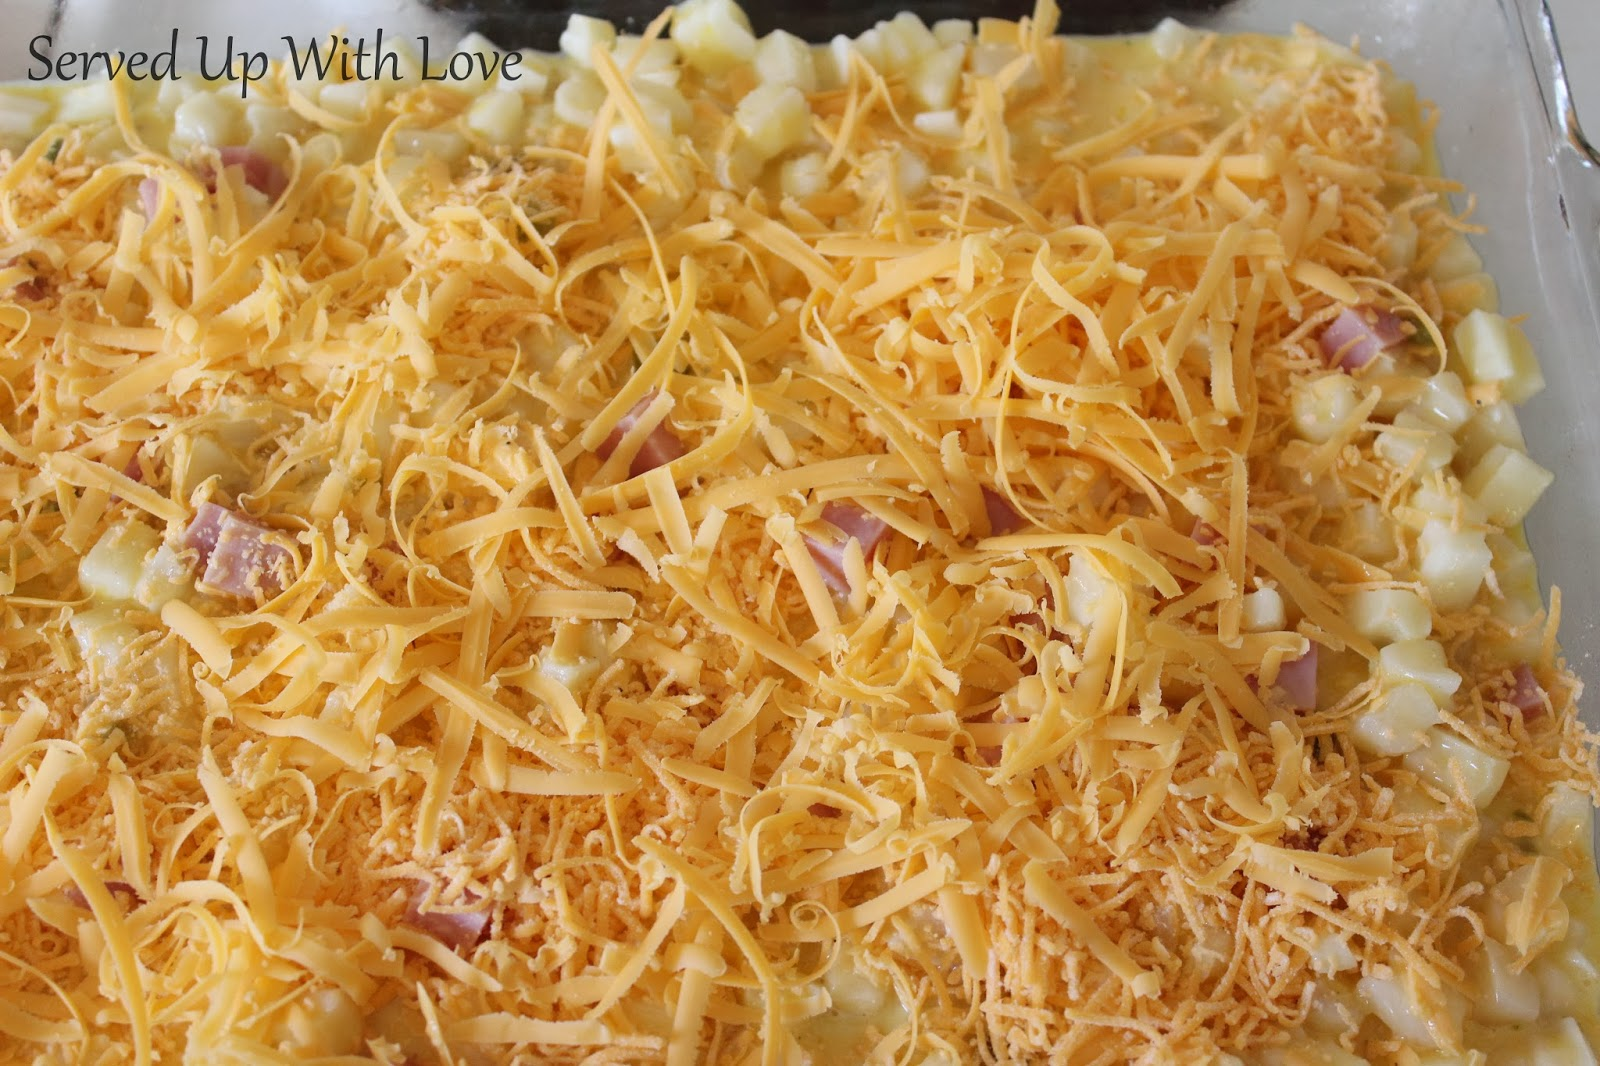 Served Up With Love: Ham and Cheese Breakfast Casserole